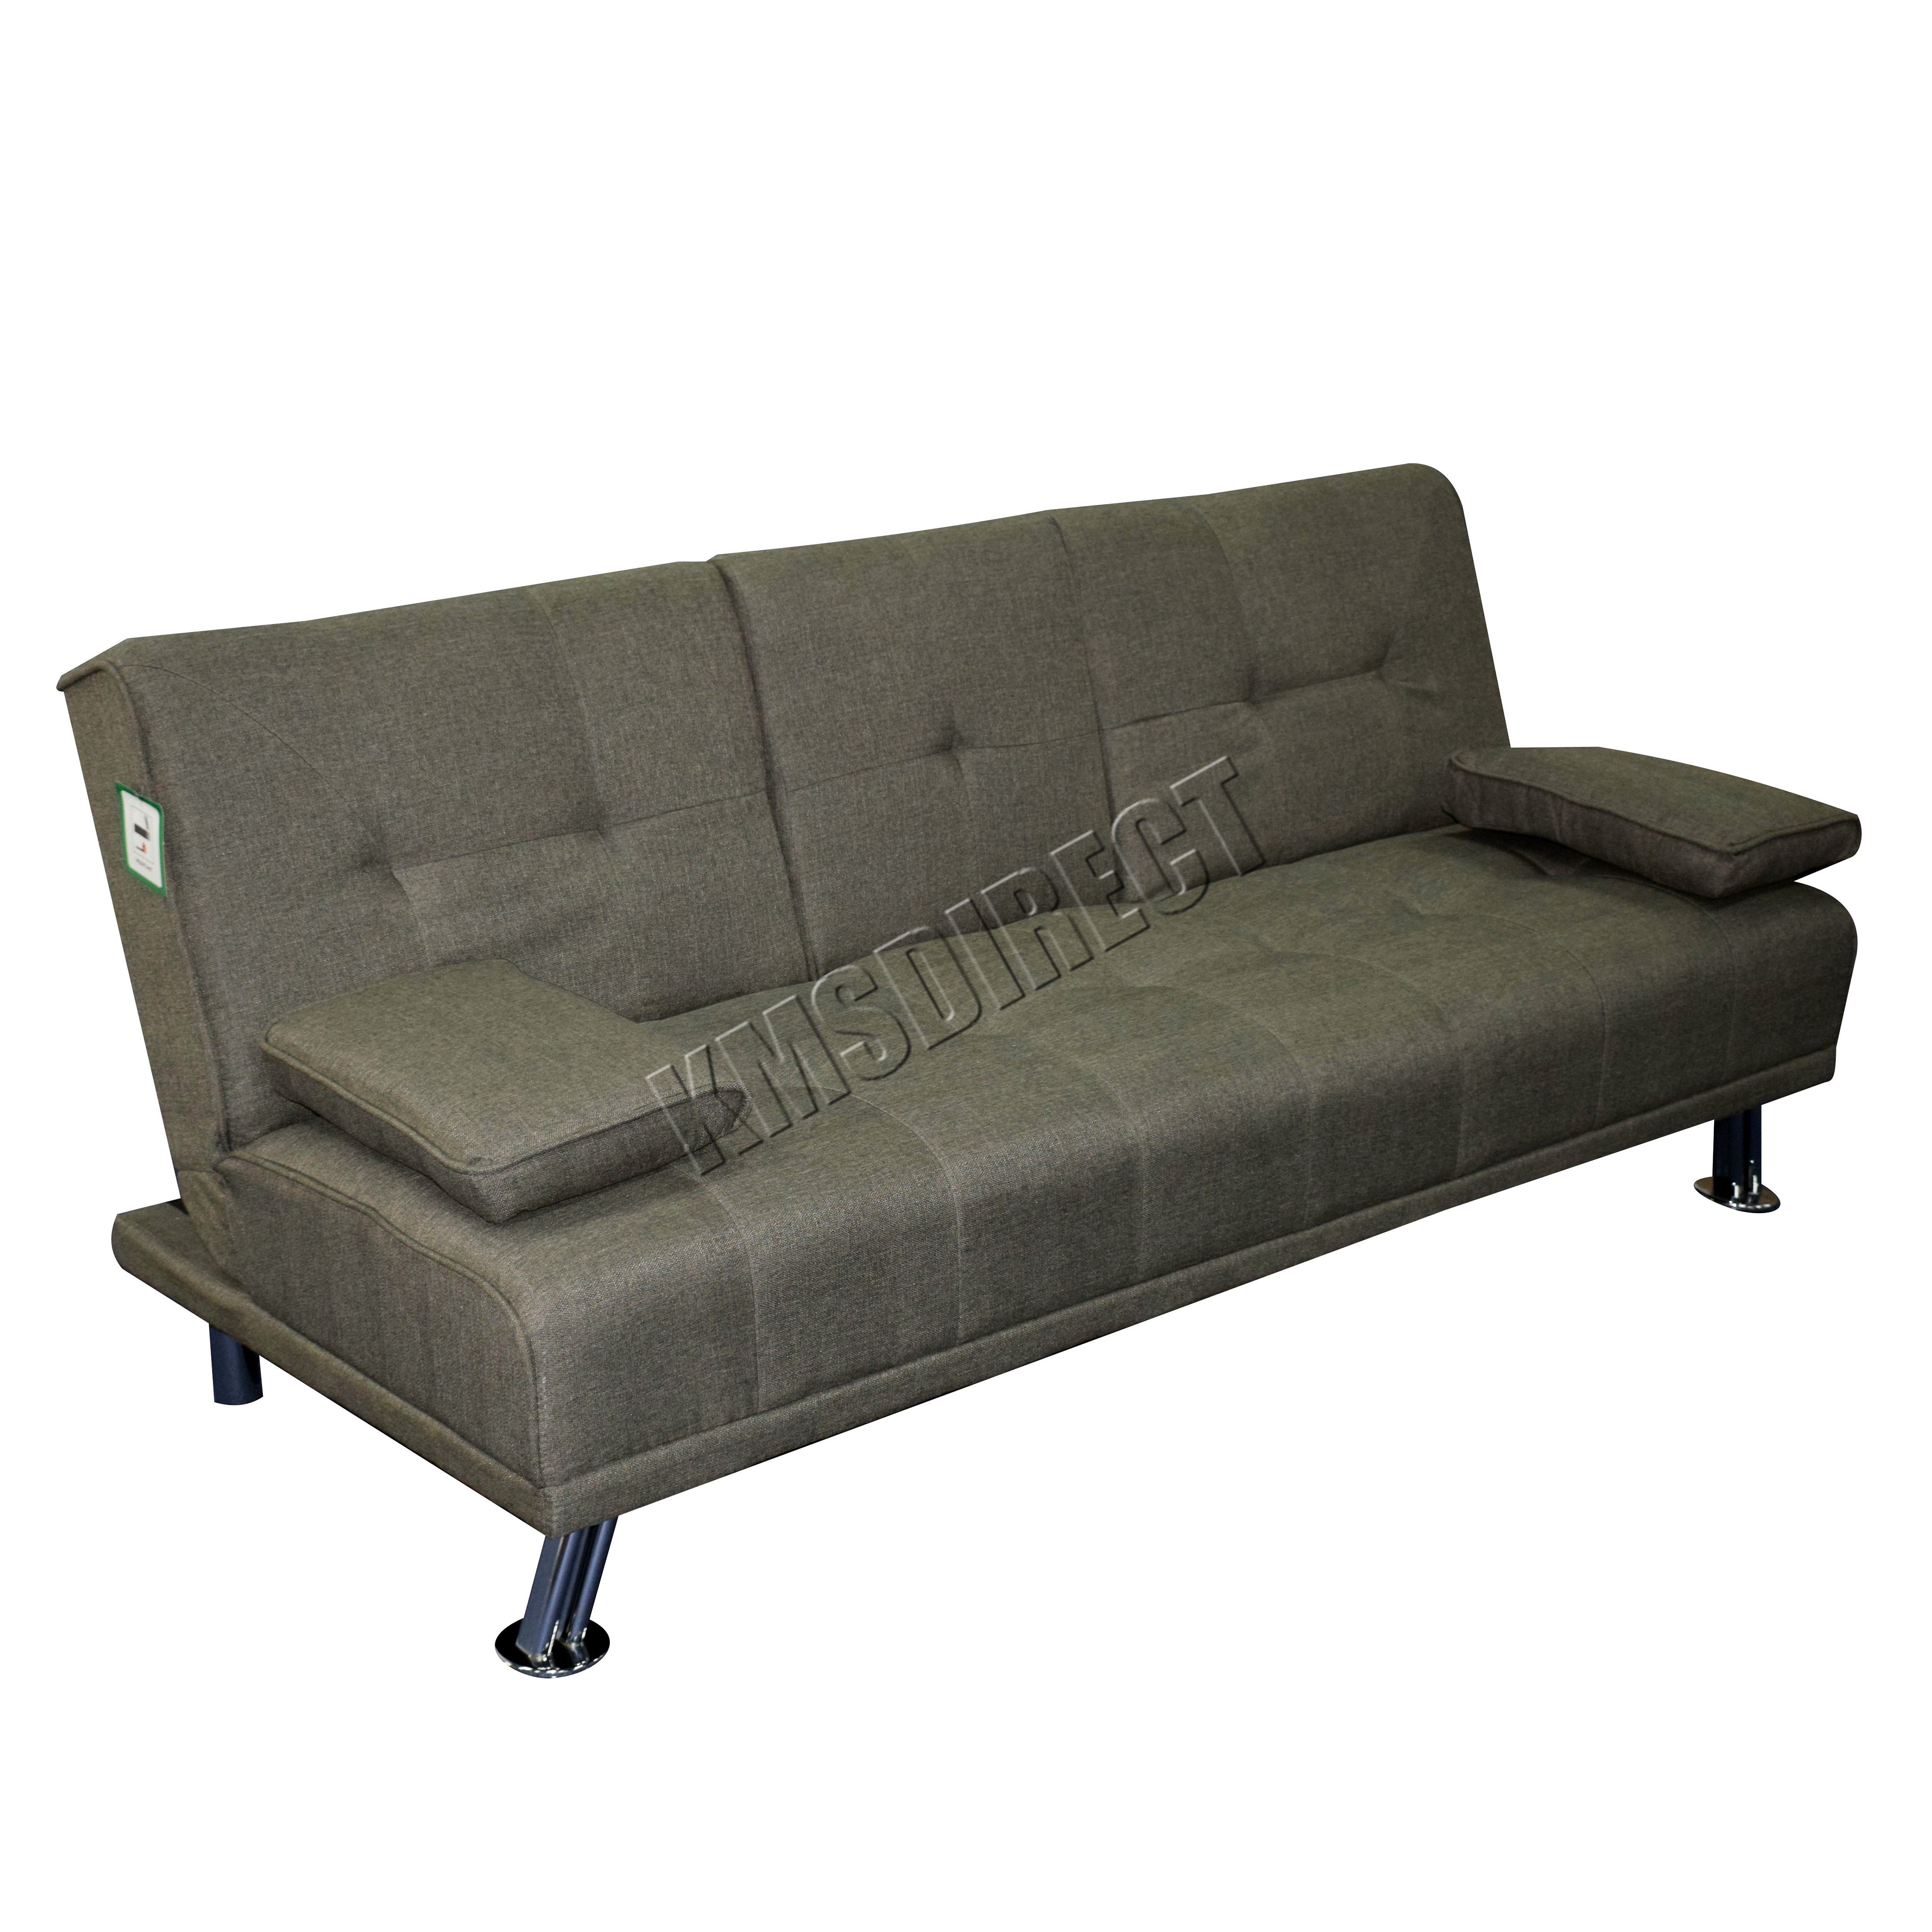 Sofa City Conforama Details About Box Damaged Foxhunter Fabric Manhattan Sofa Bed Recliner 3 Seater Modern Grey